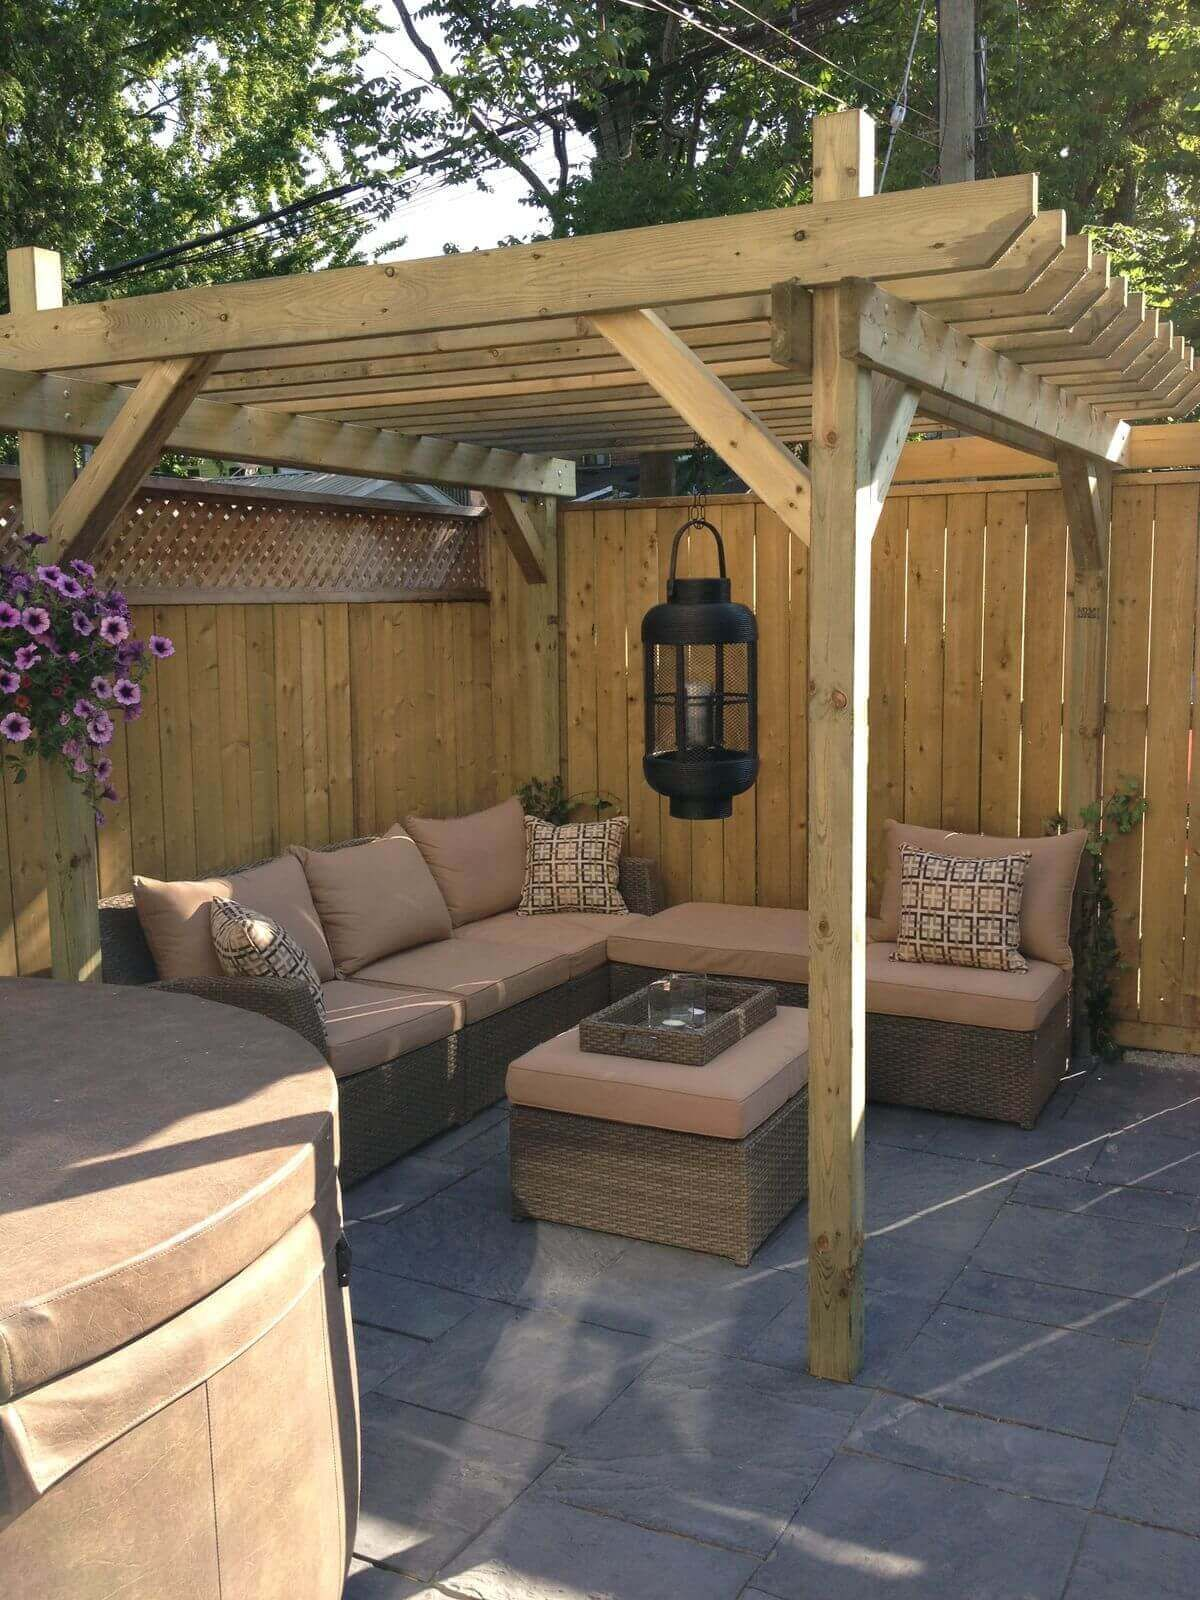 36+ DIY Pergola Ideas With Low Budget For Your Garden is part of garden Decking Designs - Pergolas or architectural arbors are a great addition to your exterior, drawing guests into its space  Backyard Pergolas Pergolas are often used in backyard spaces to define the sitting area or patio  They can be constructed over a cement or tile sitting area to provide some shade, depending on